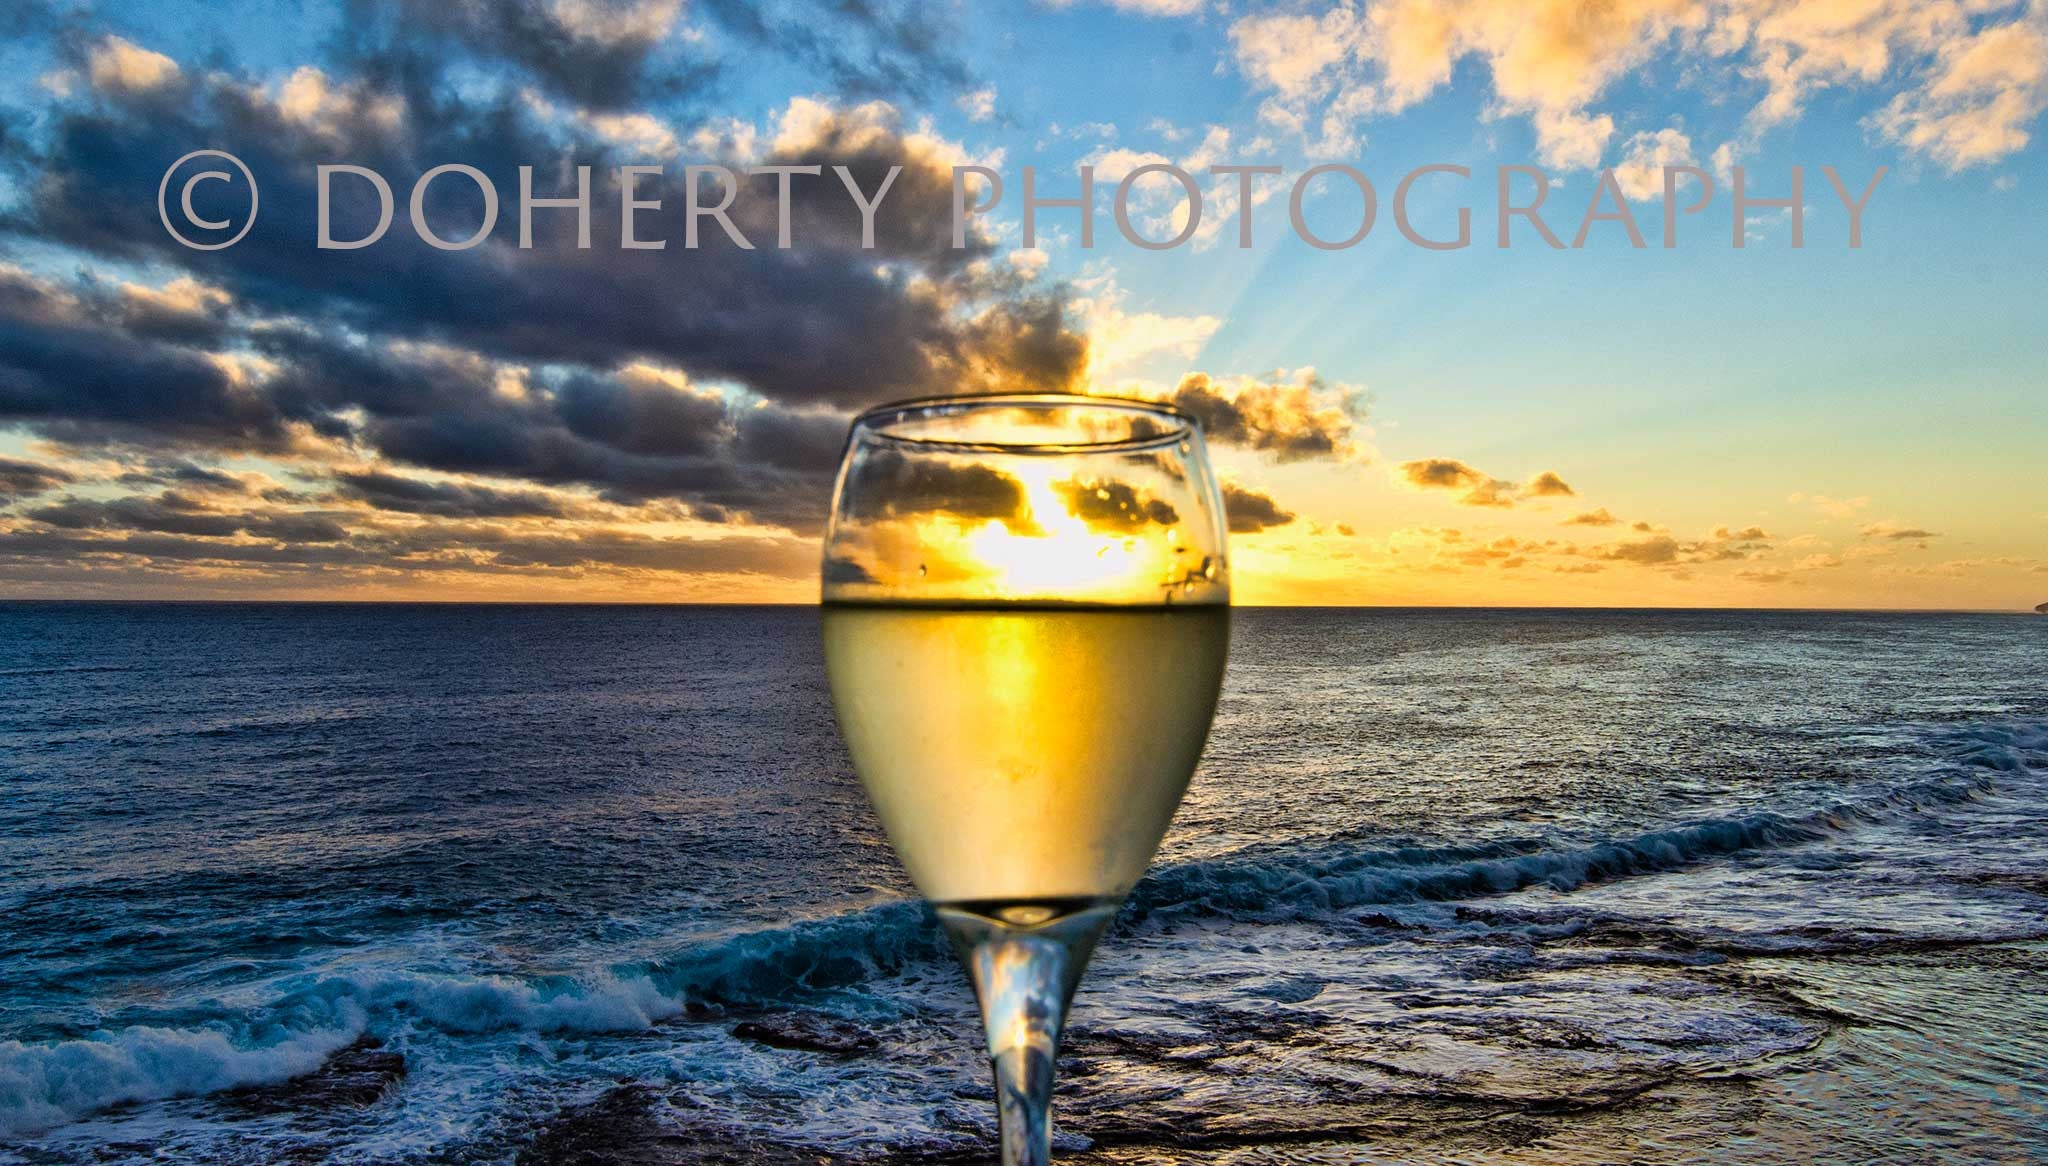 Fine Wine in the Sunshine - Doherty Photography